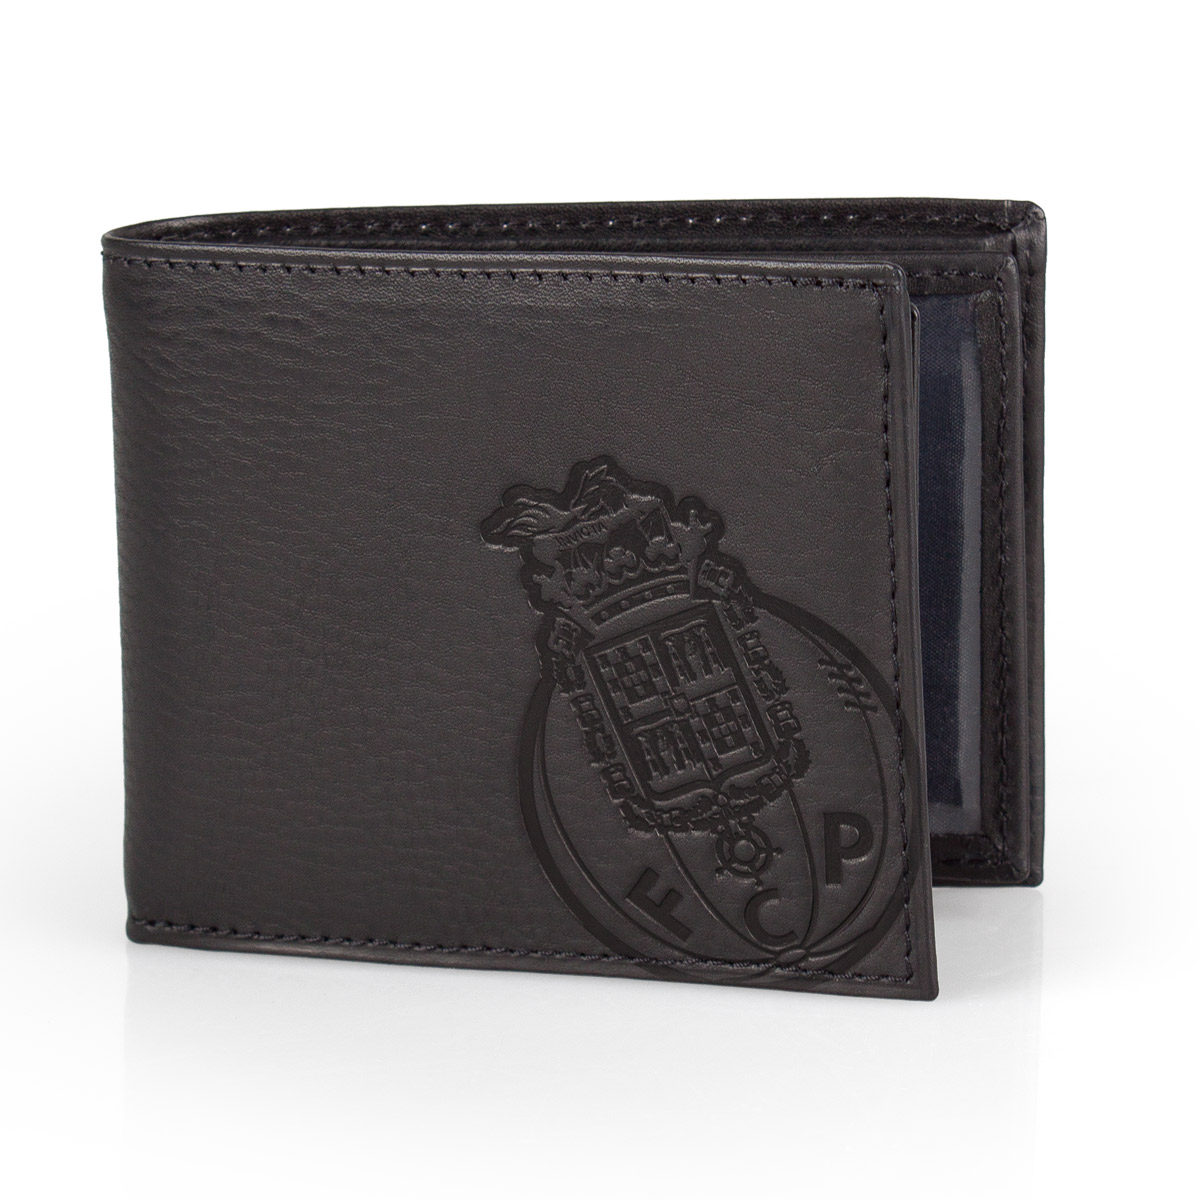 Leather Wallet F.C. PORTO Black 11.5cm – image 2